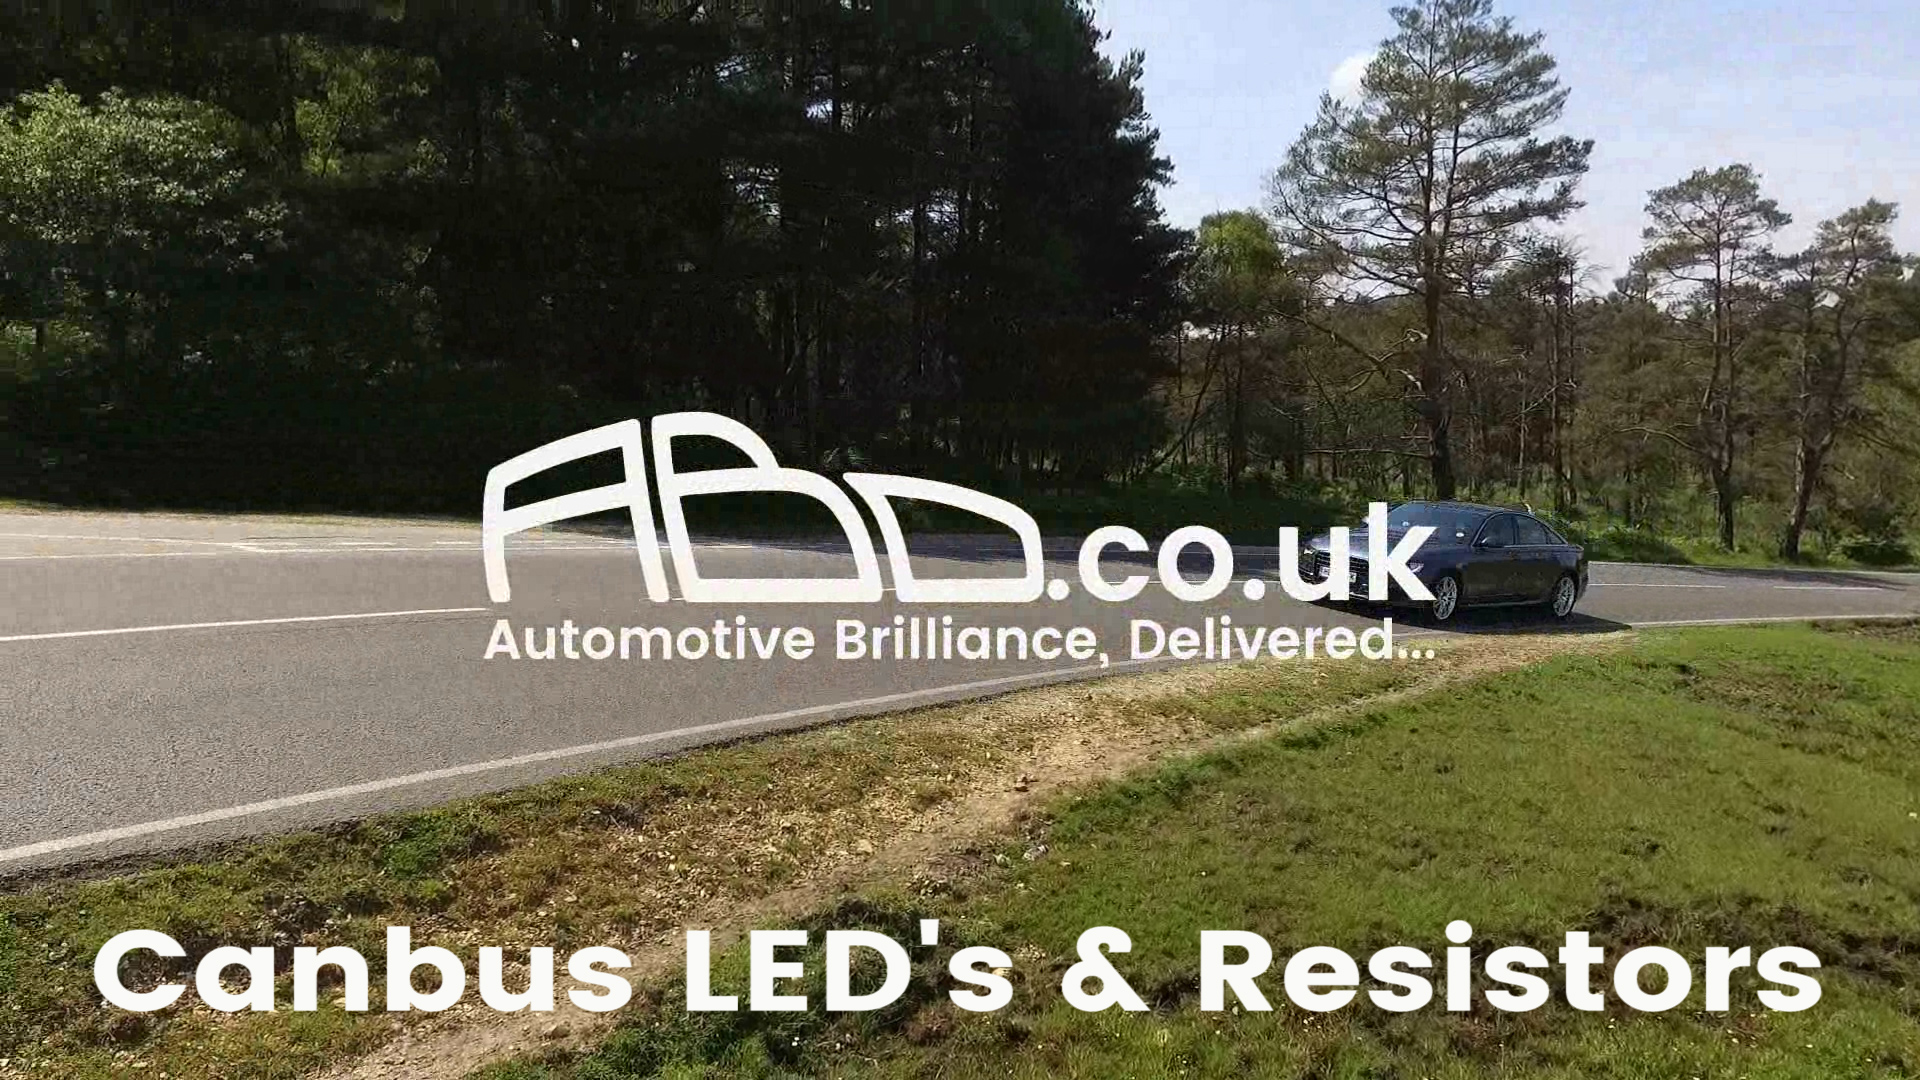 Canbus LEDs and Resistors